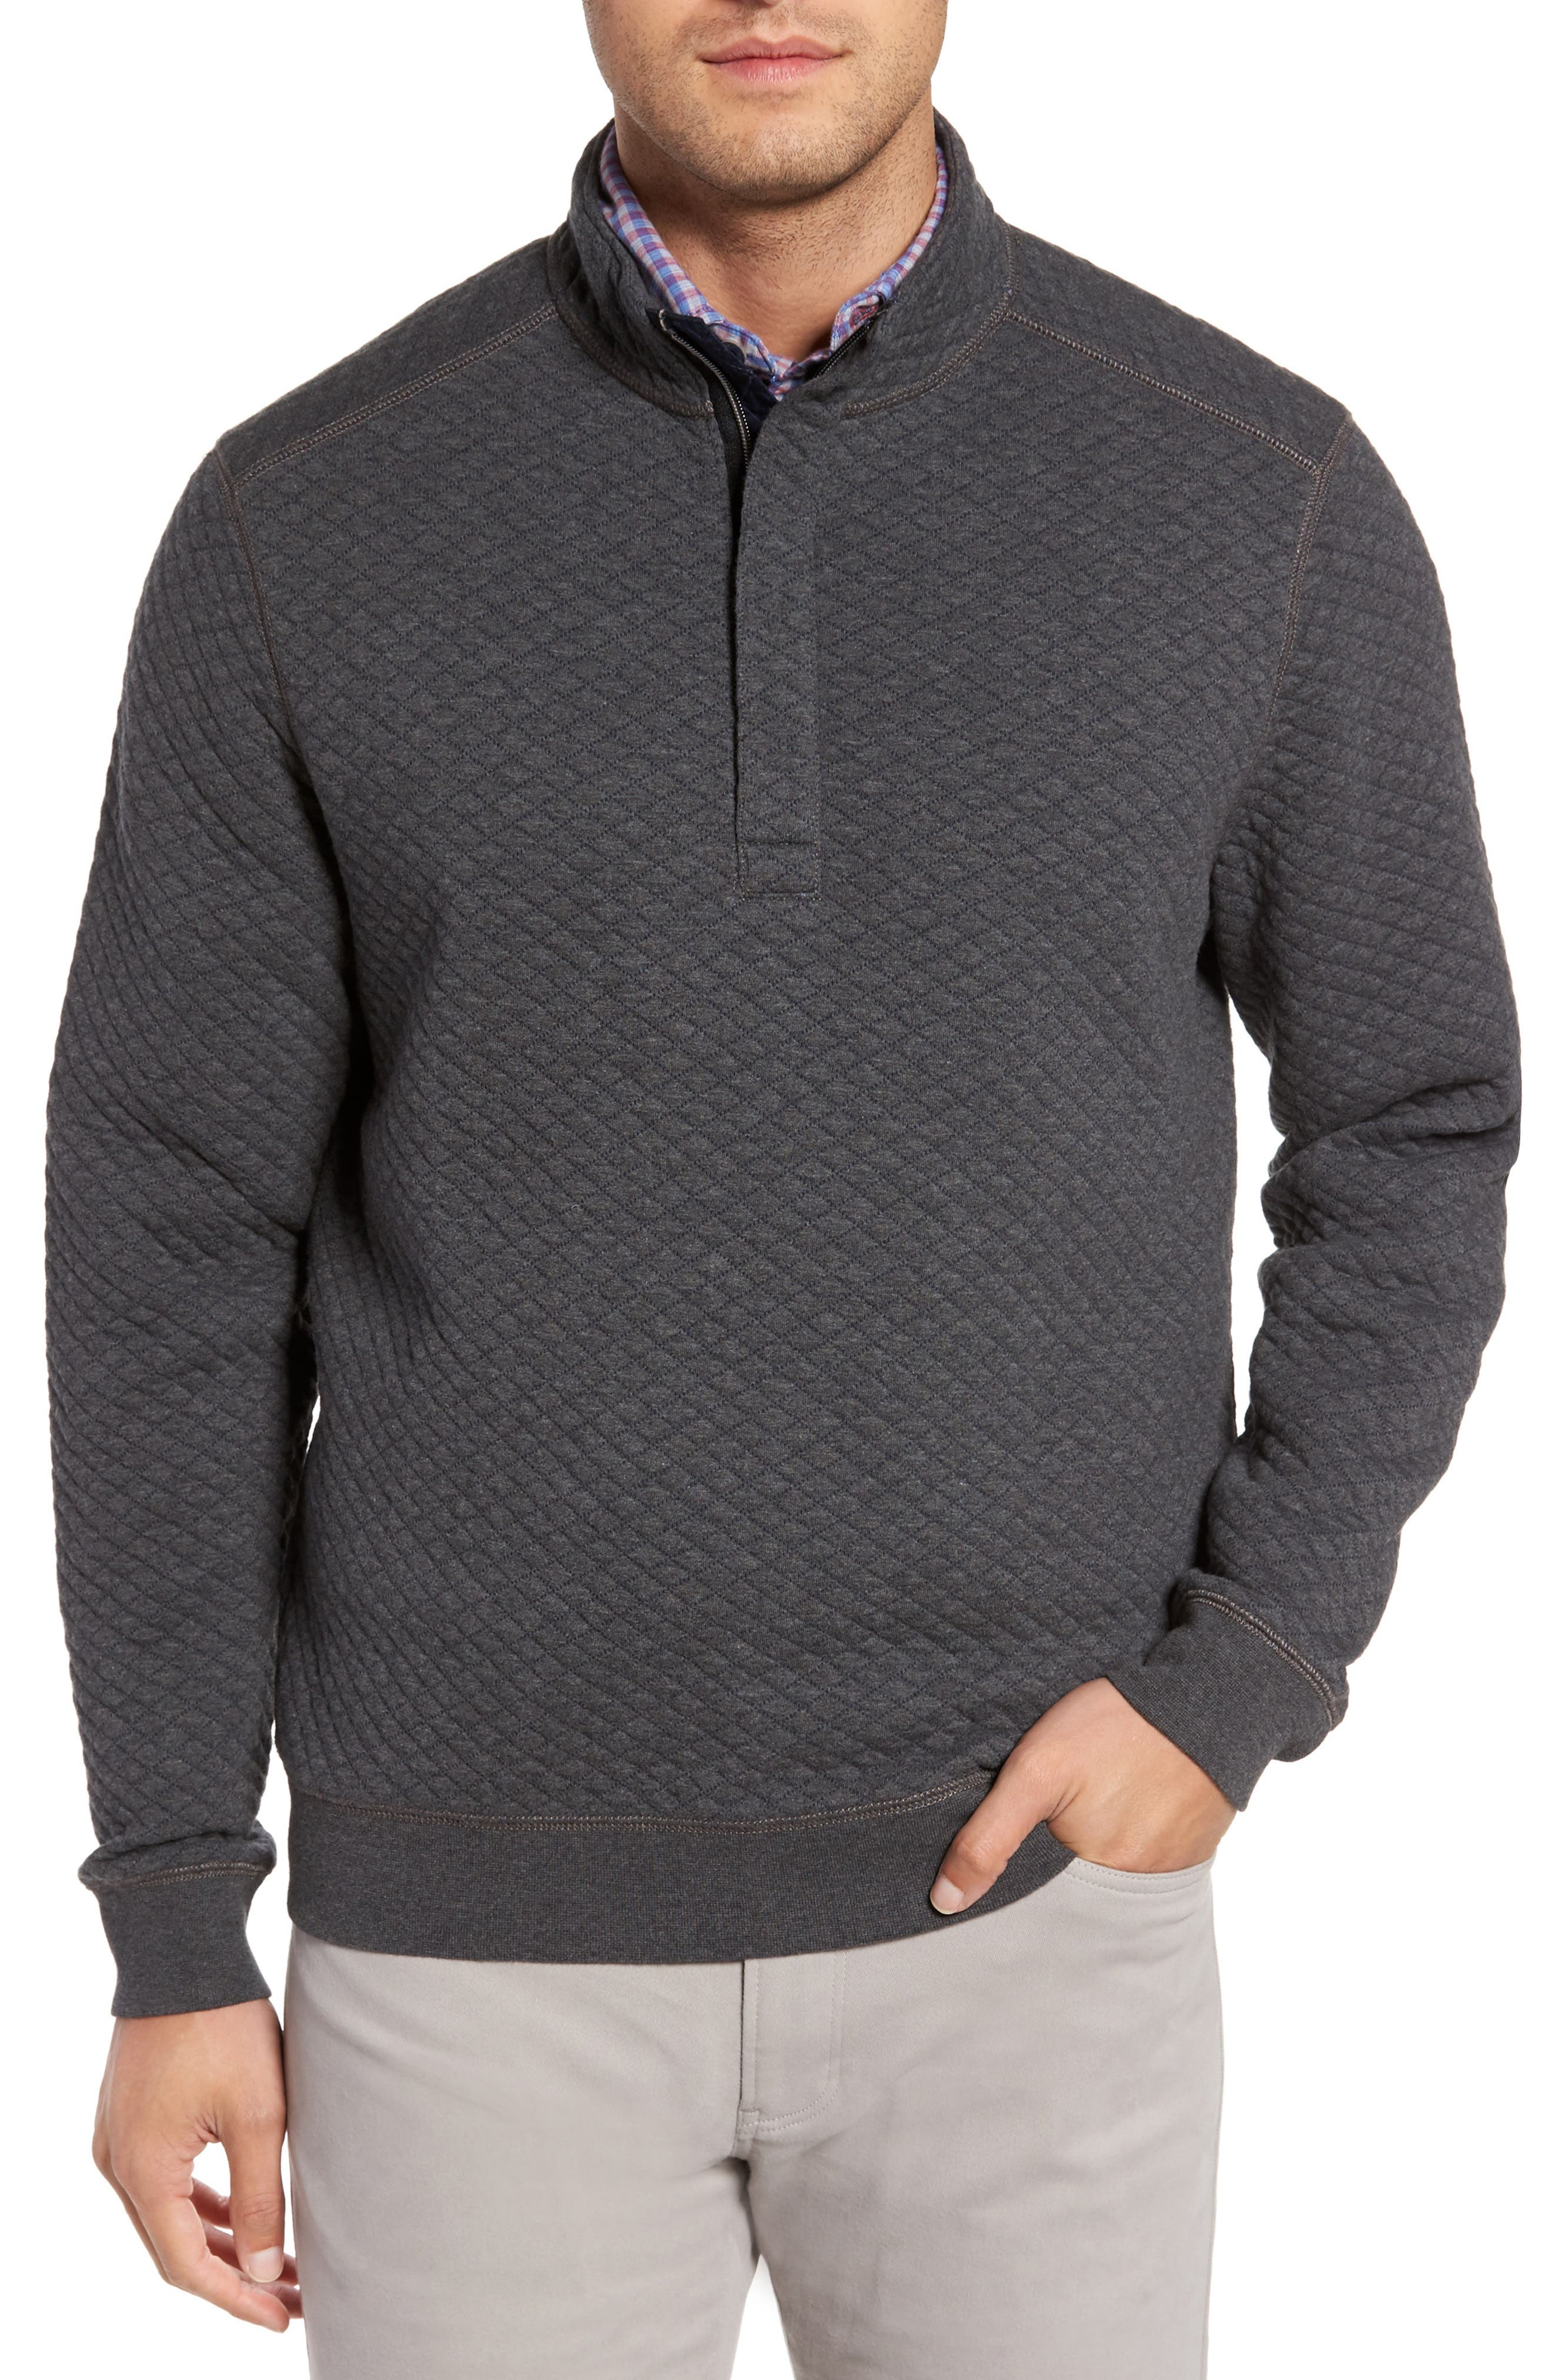 TOMMY BAHAMA, Quiltessential Standard Fit Quarter Zip Pullover, Main thumbnail 1, color, CHARCOAL HEATHER